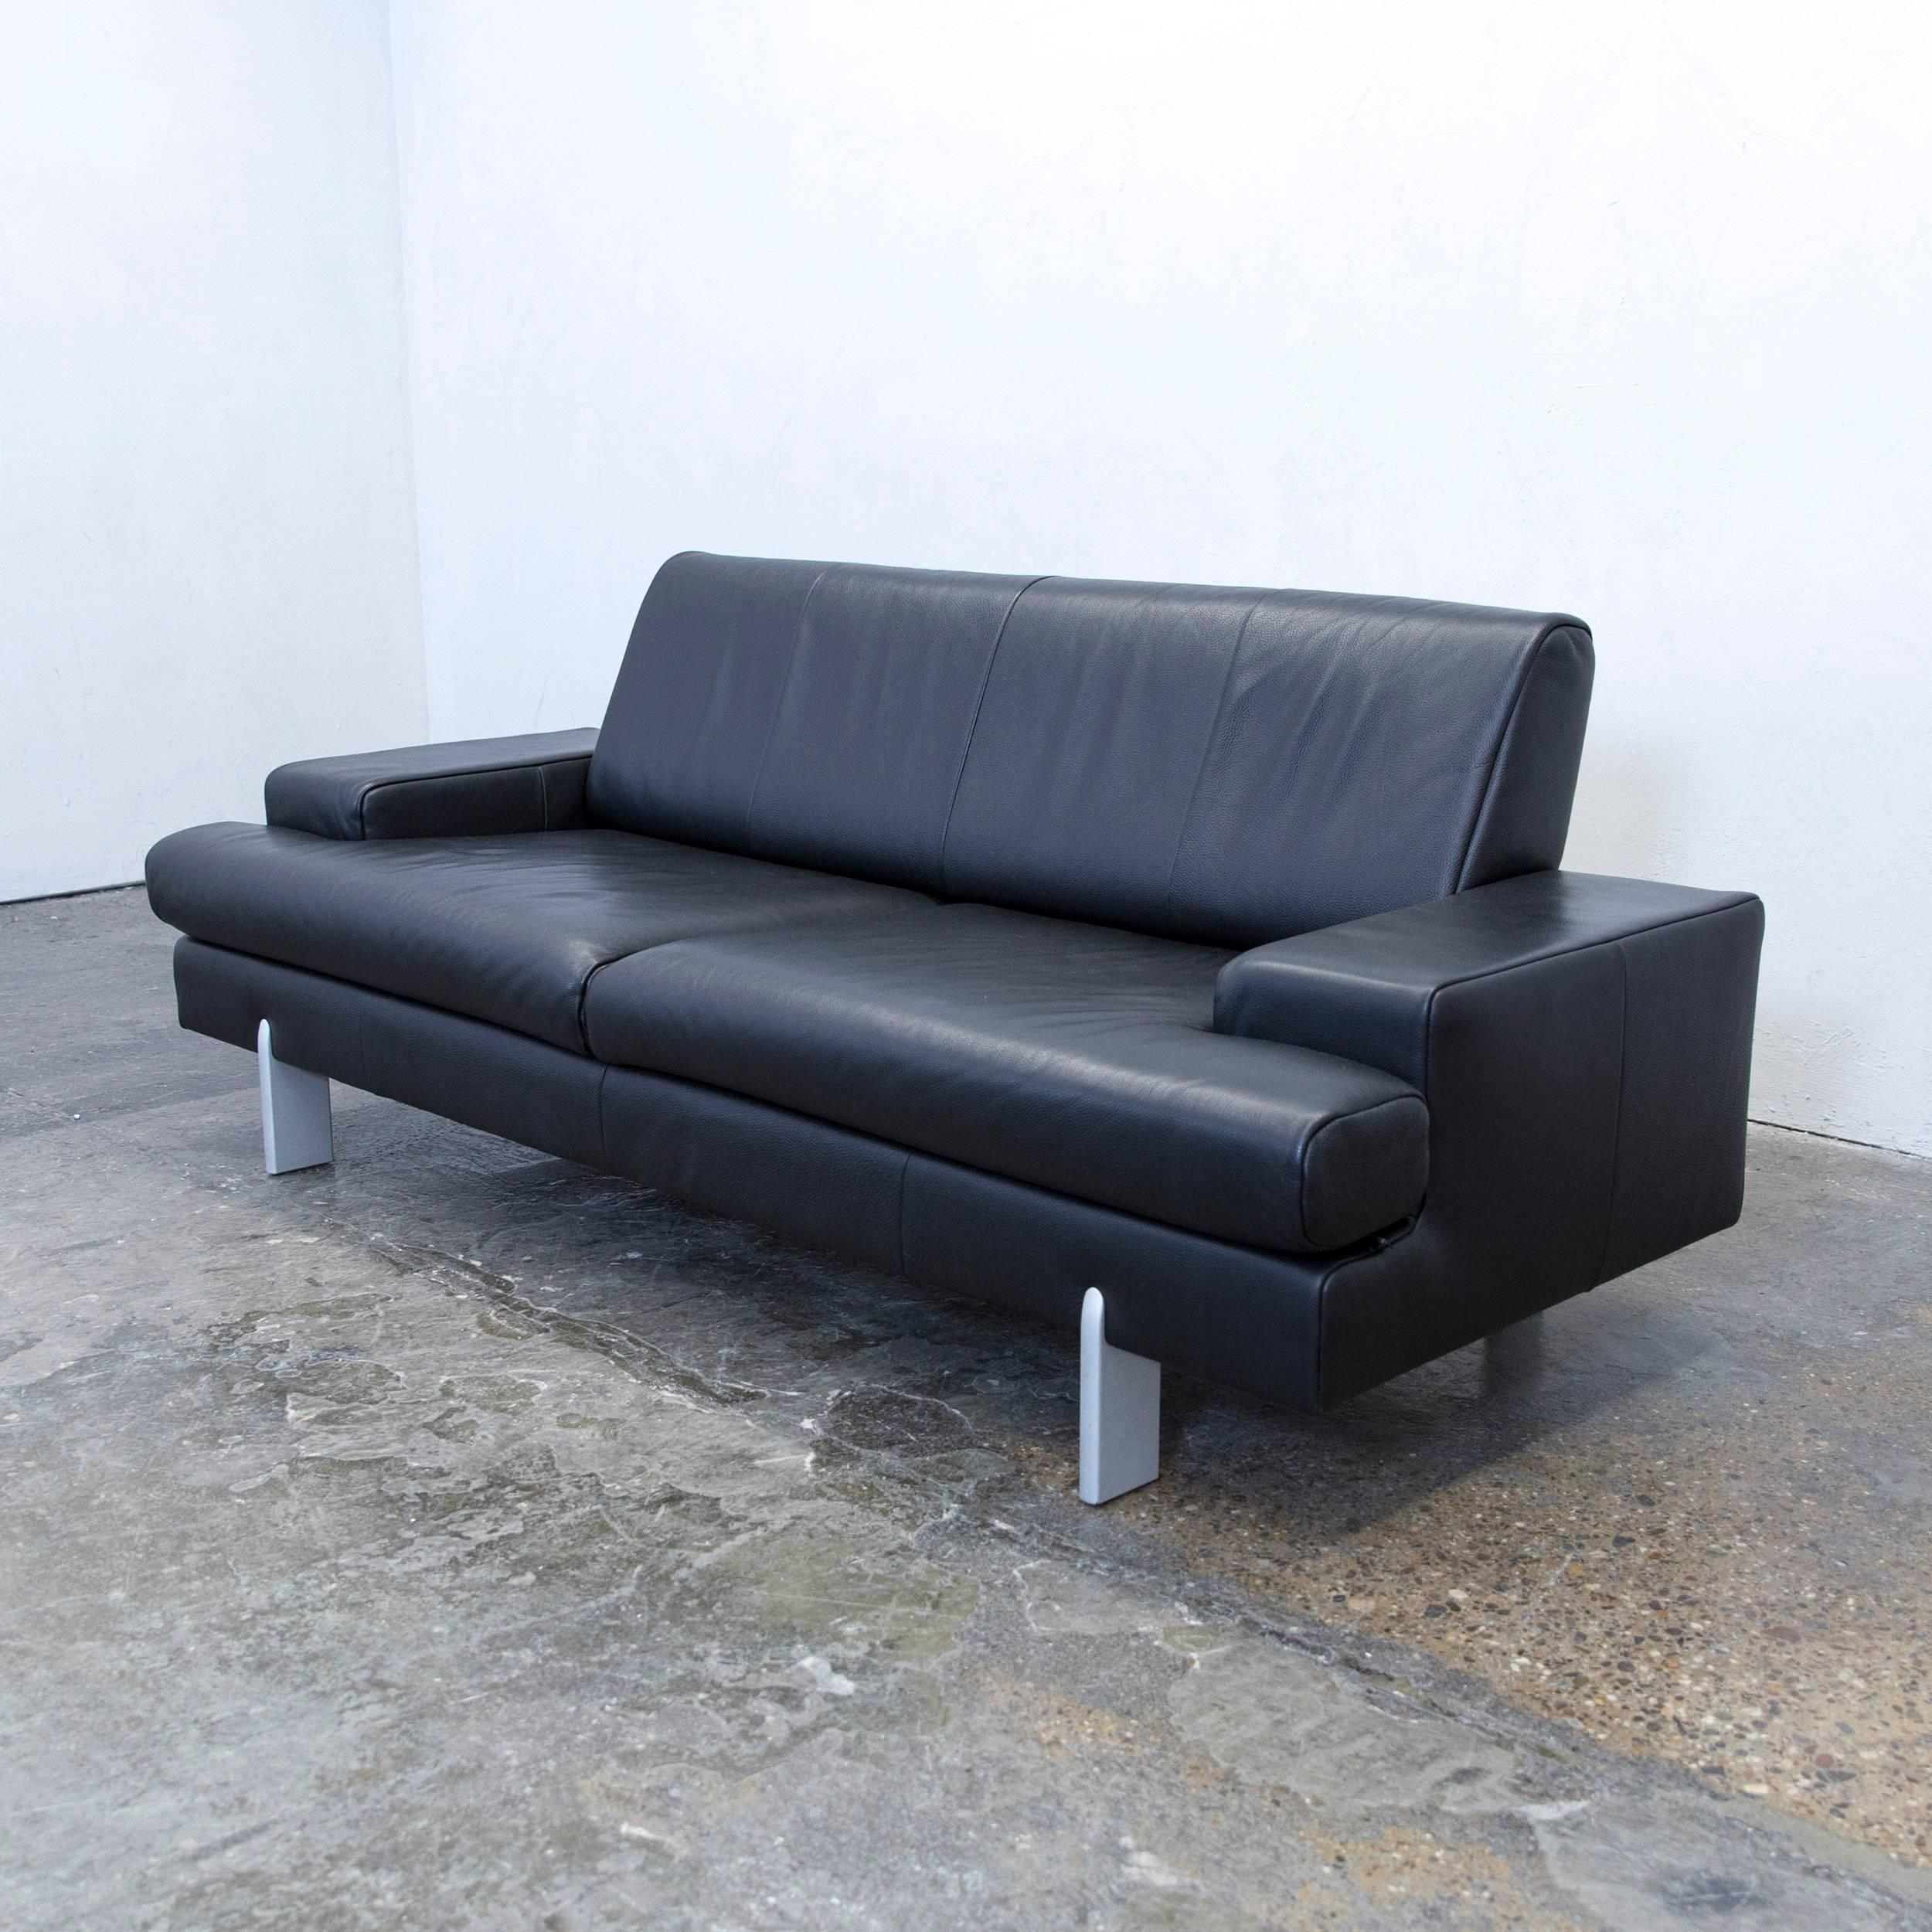 Design Sofa Rolf Benz Rolf Benz Bmp Designer Sofa Leather Black Three-seat Couch